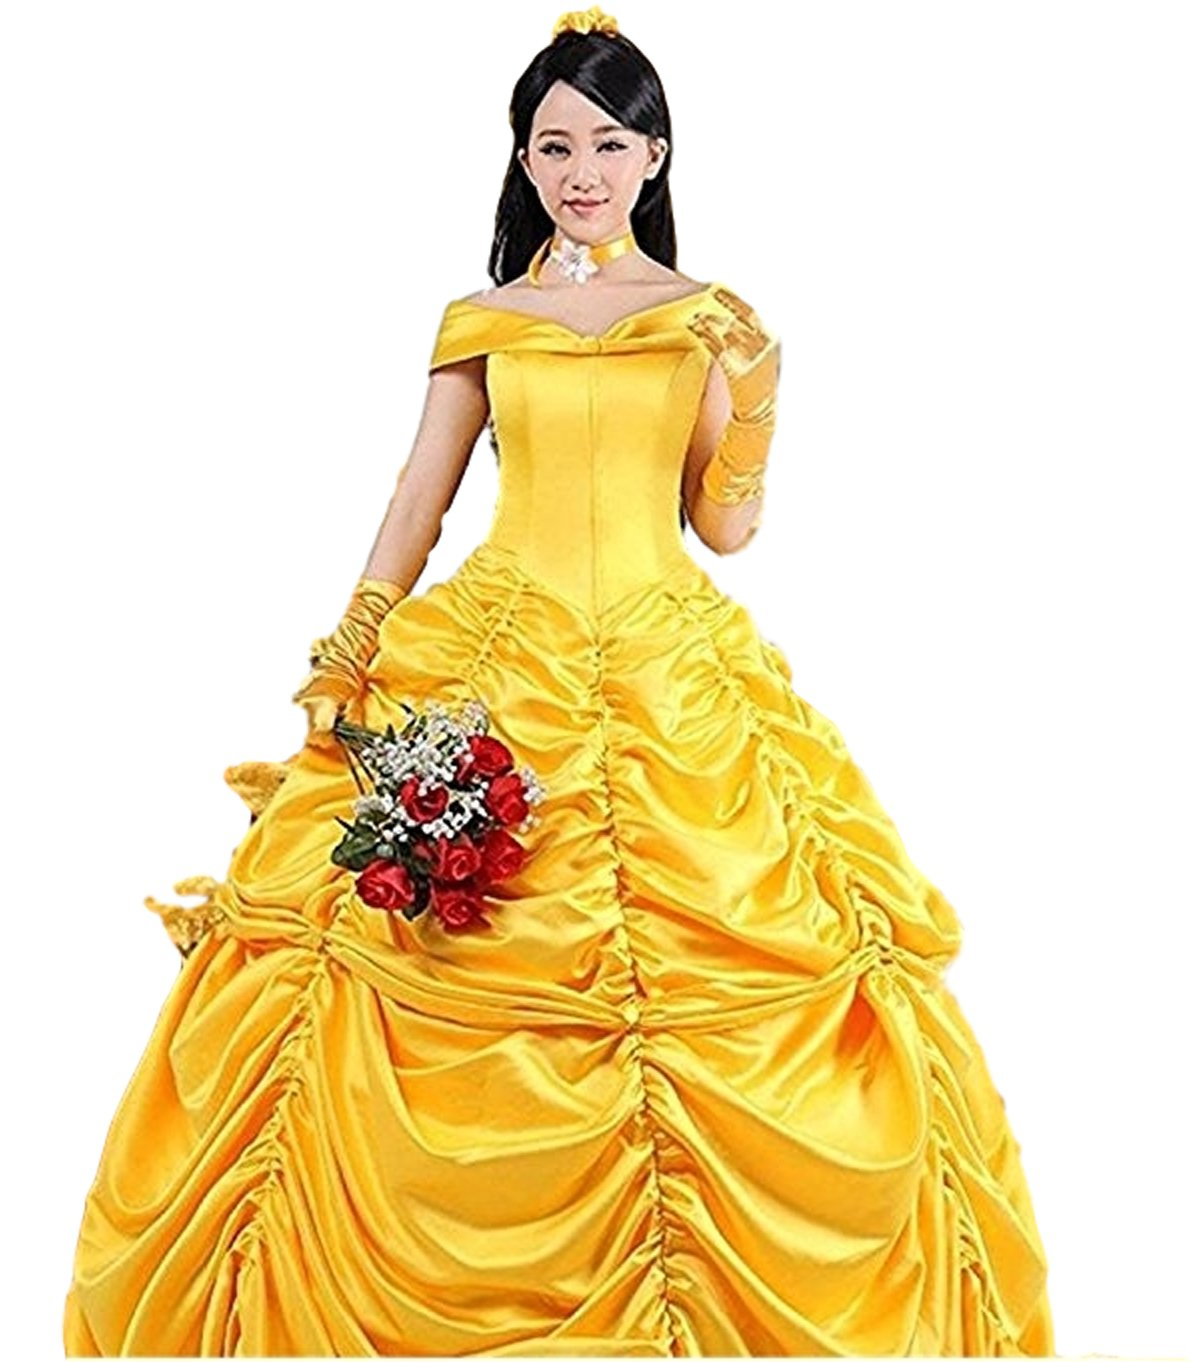 HalloweenCostumeParty Beauty and Beast Belle costume dress for adults woman (XXXL) by HalloweenCostumeParty